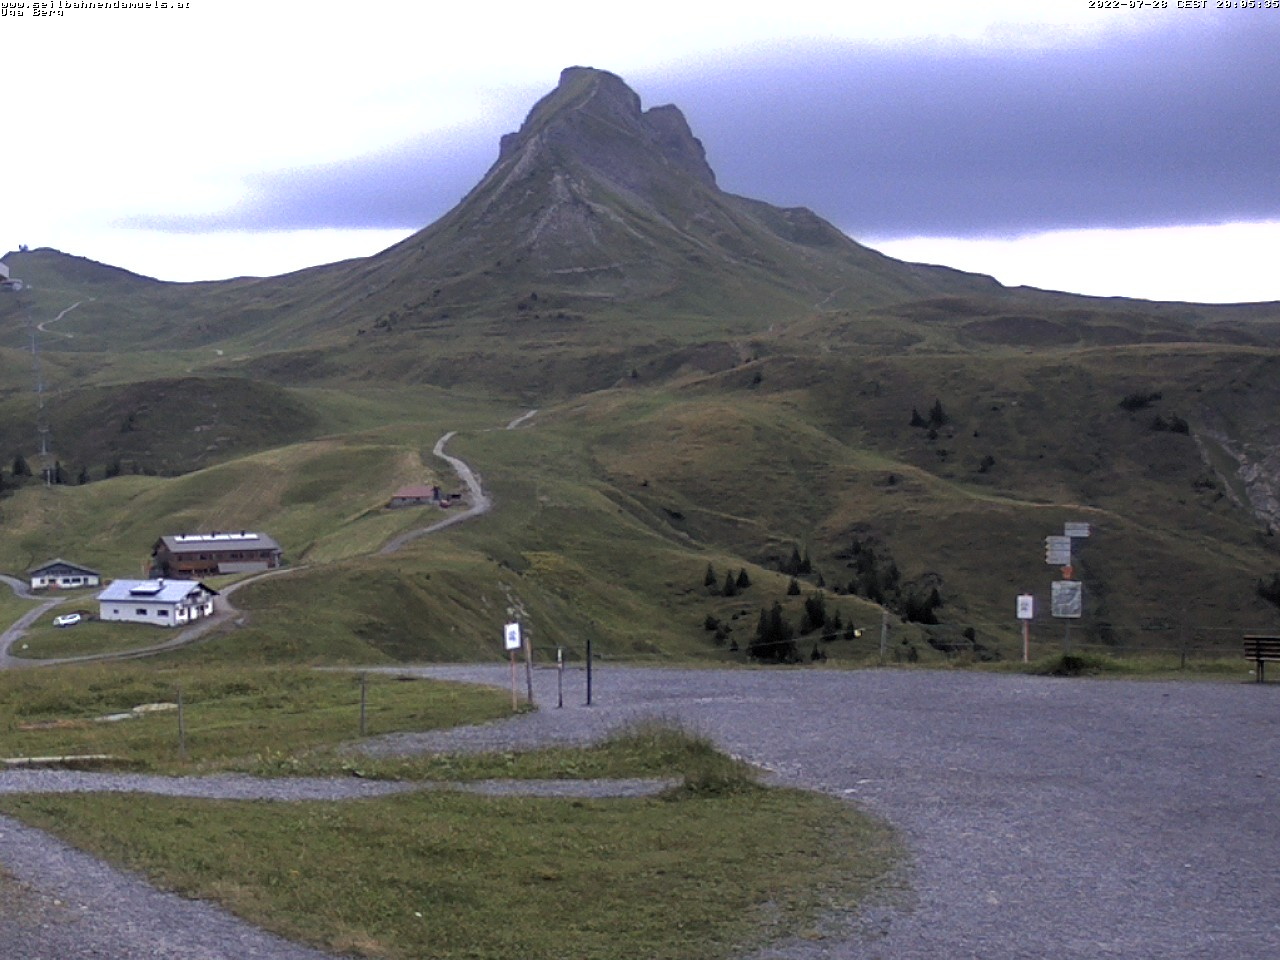 Webcam Damüls Uga 1830m